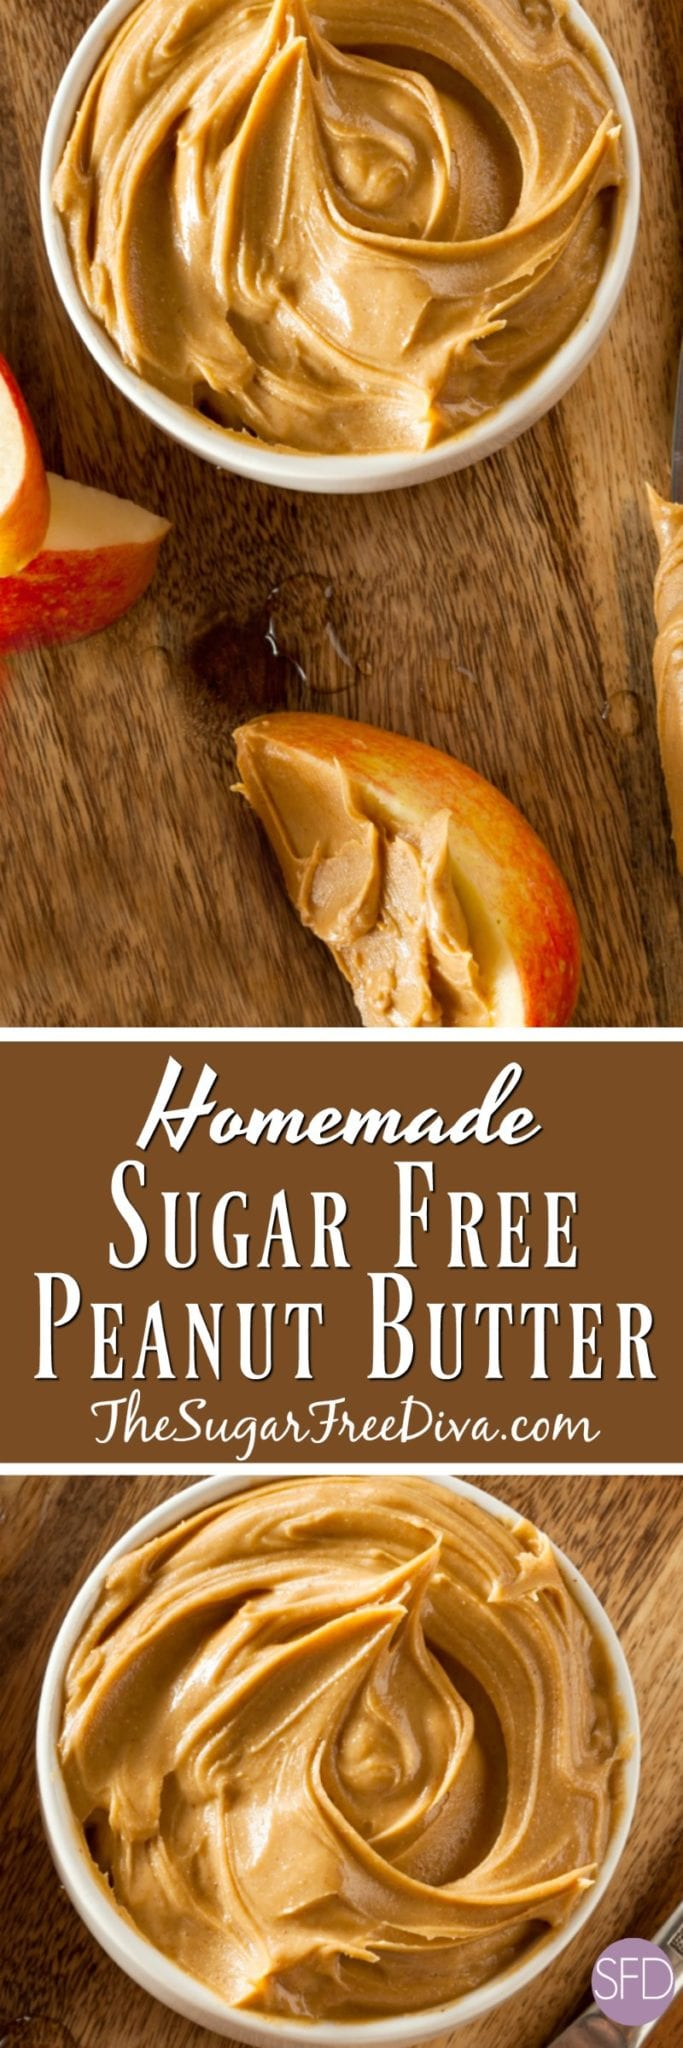 How to Make Homemade Sugar Free Peanut Butter #sugarfree #keto #peanutbutter #recipe #easy #diy